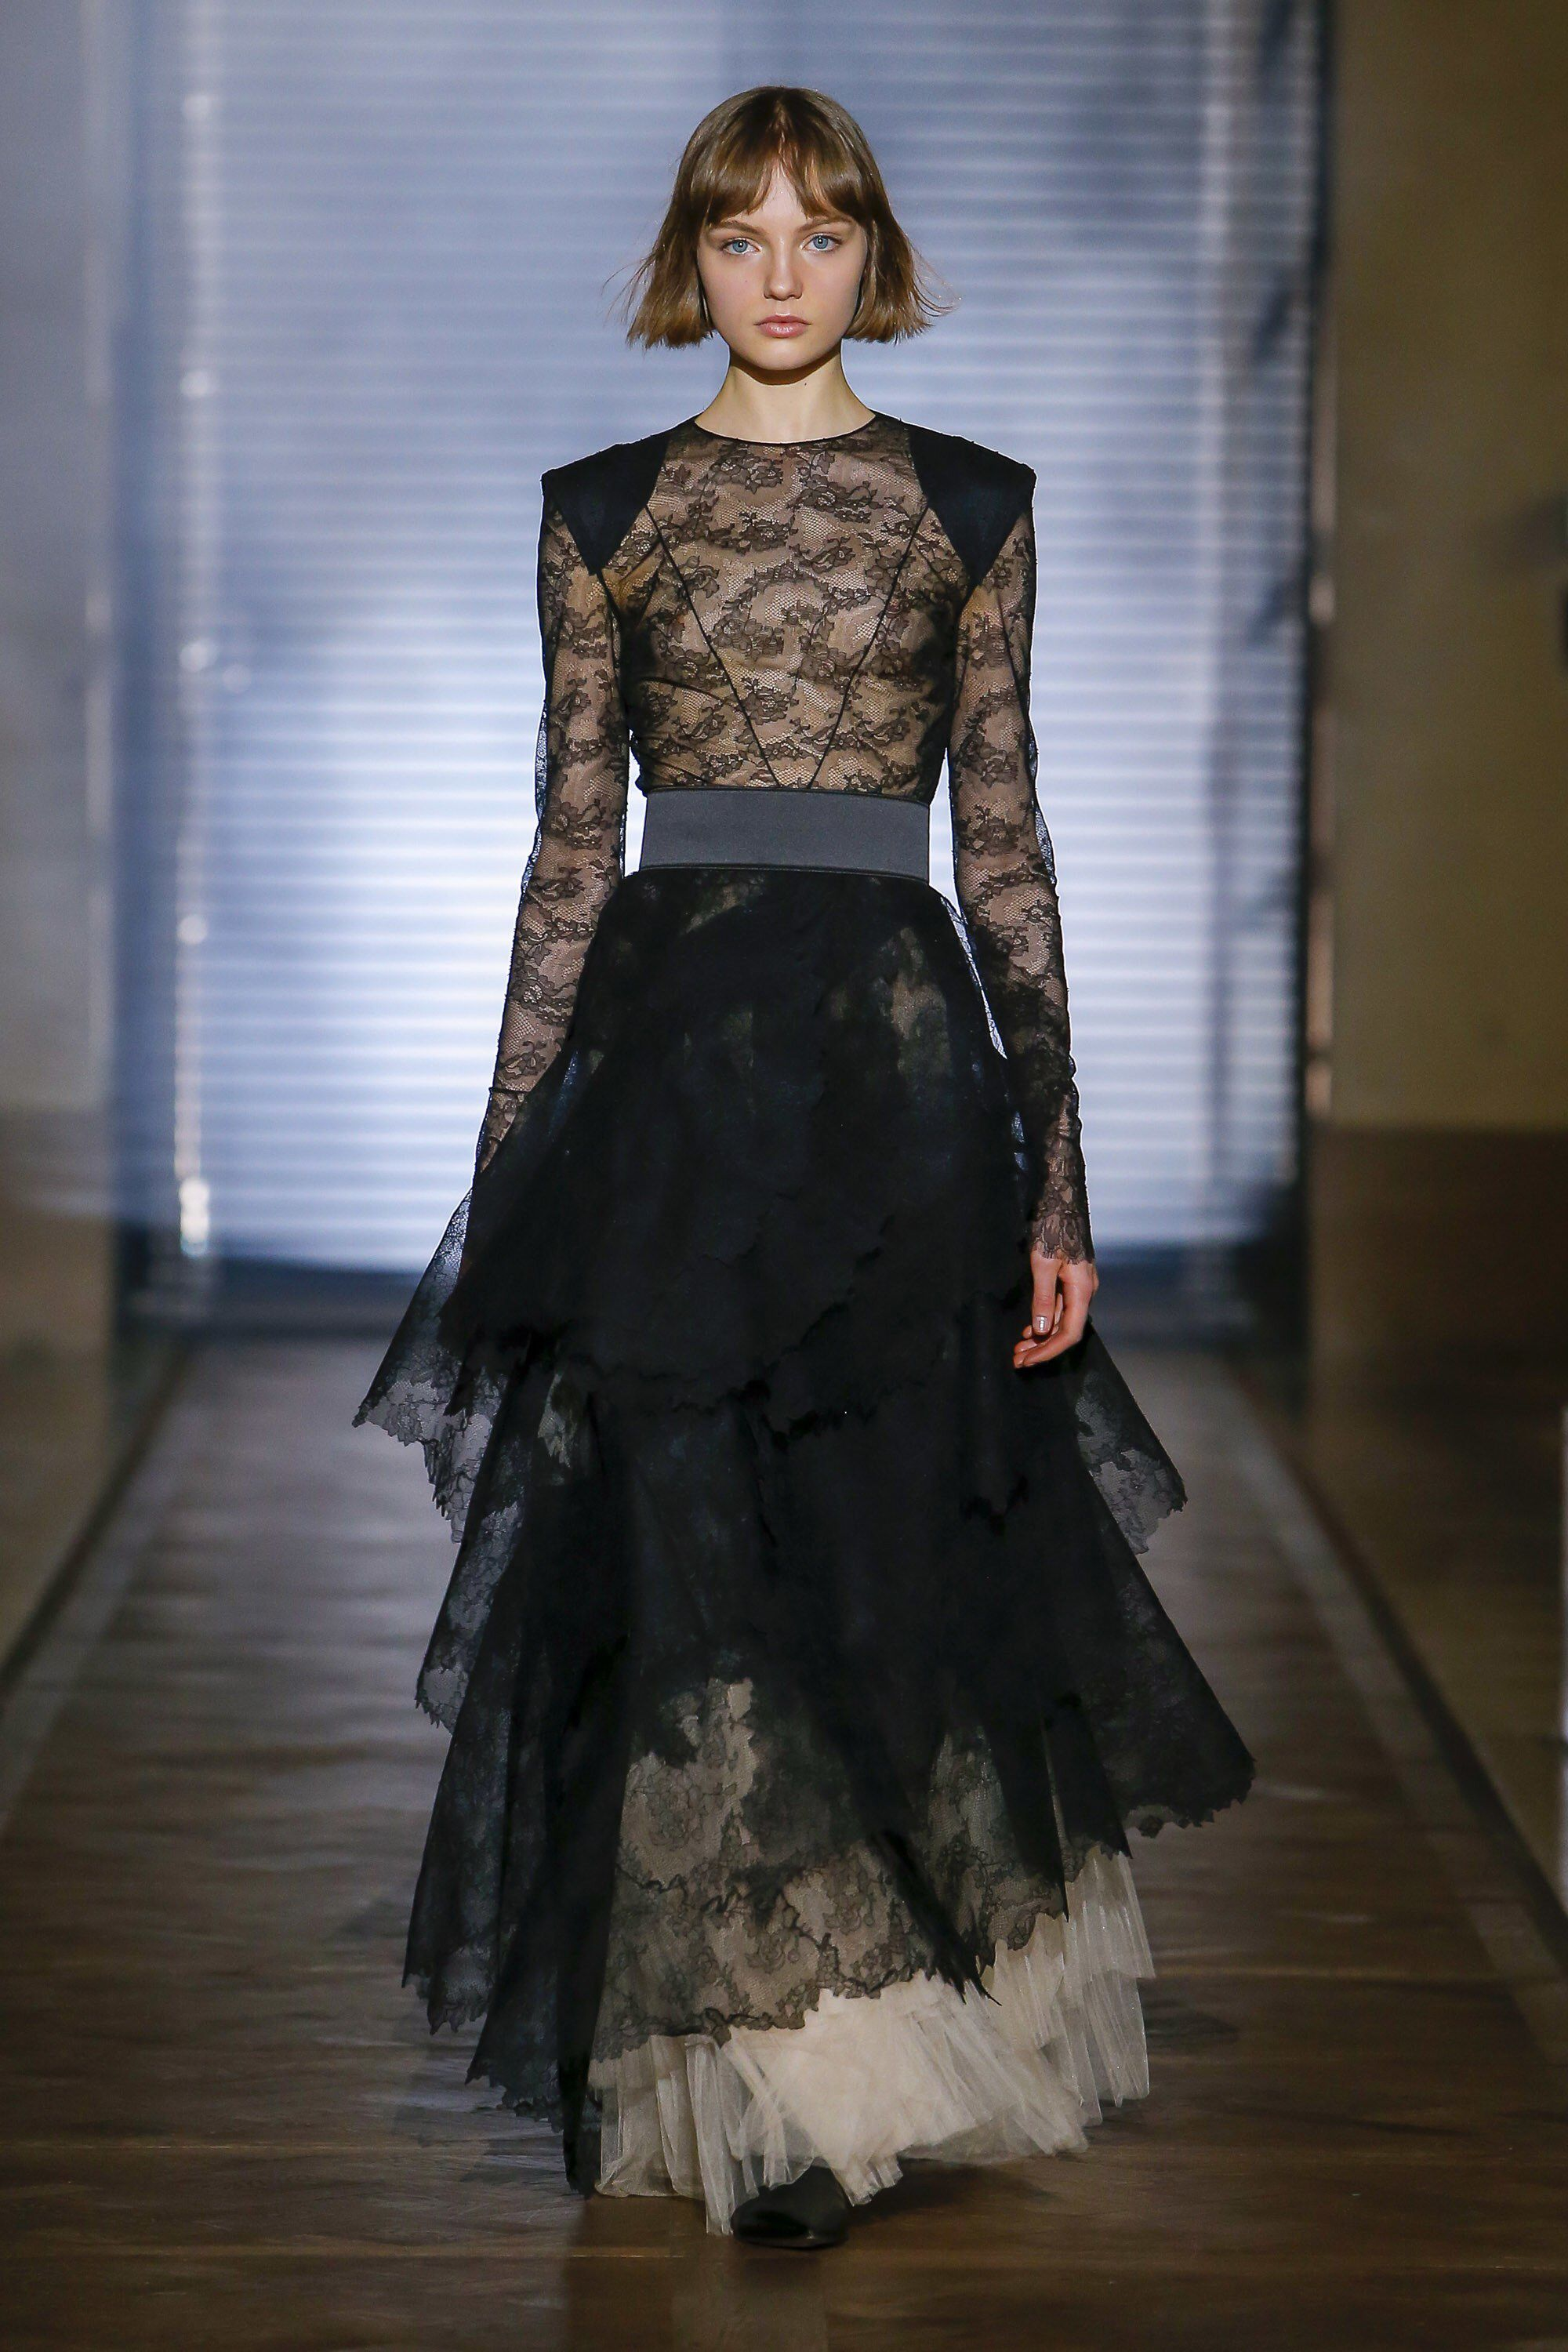 Will givenchy couture shows forecast dress for spring in 2019